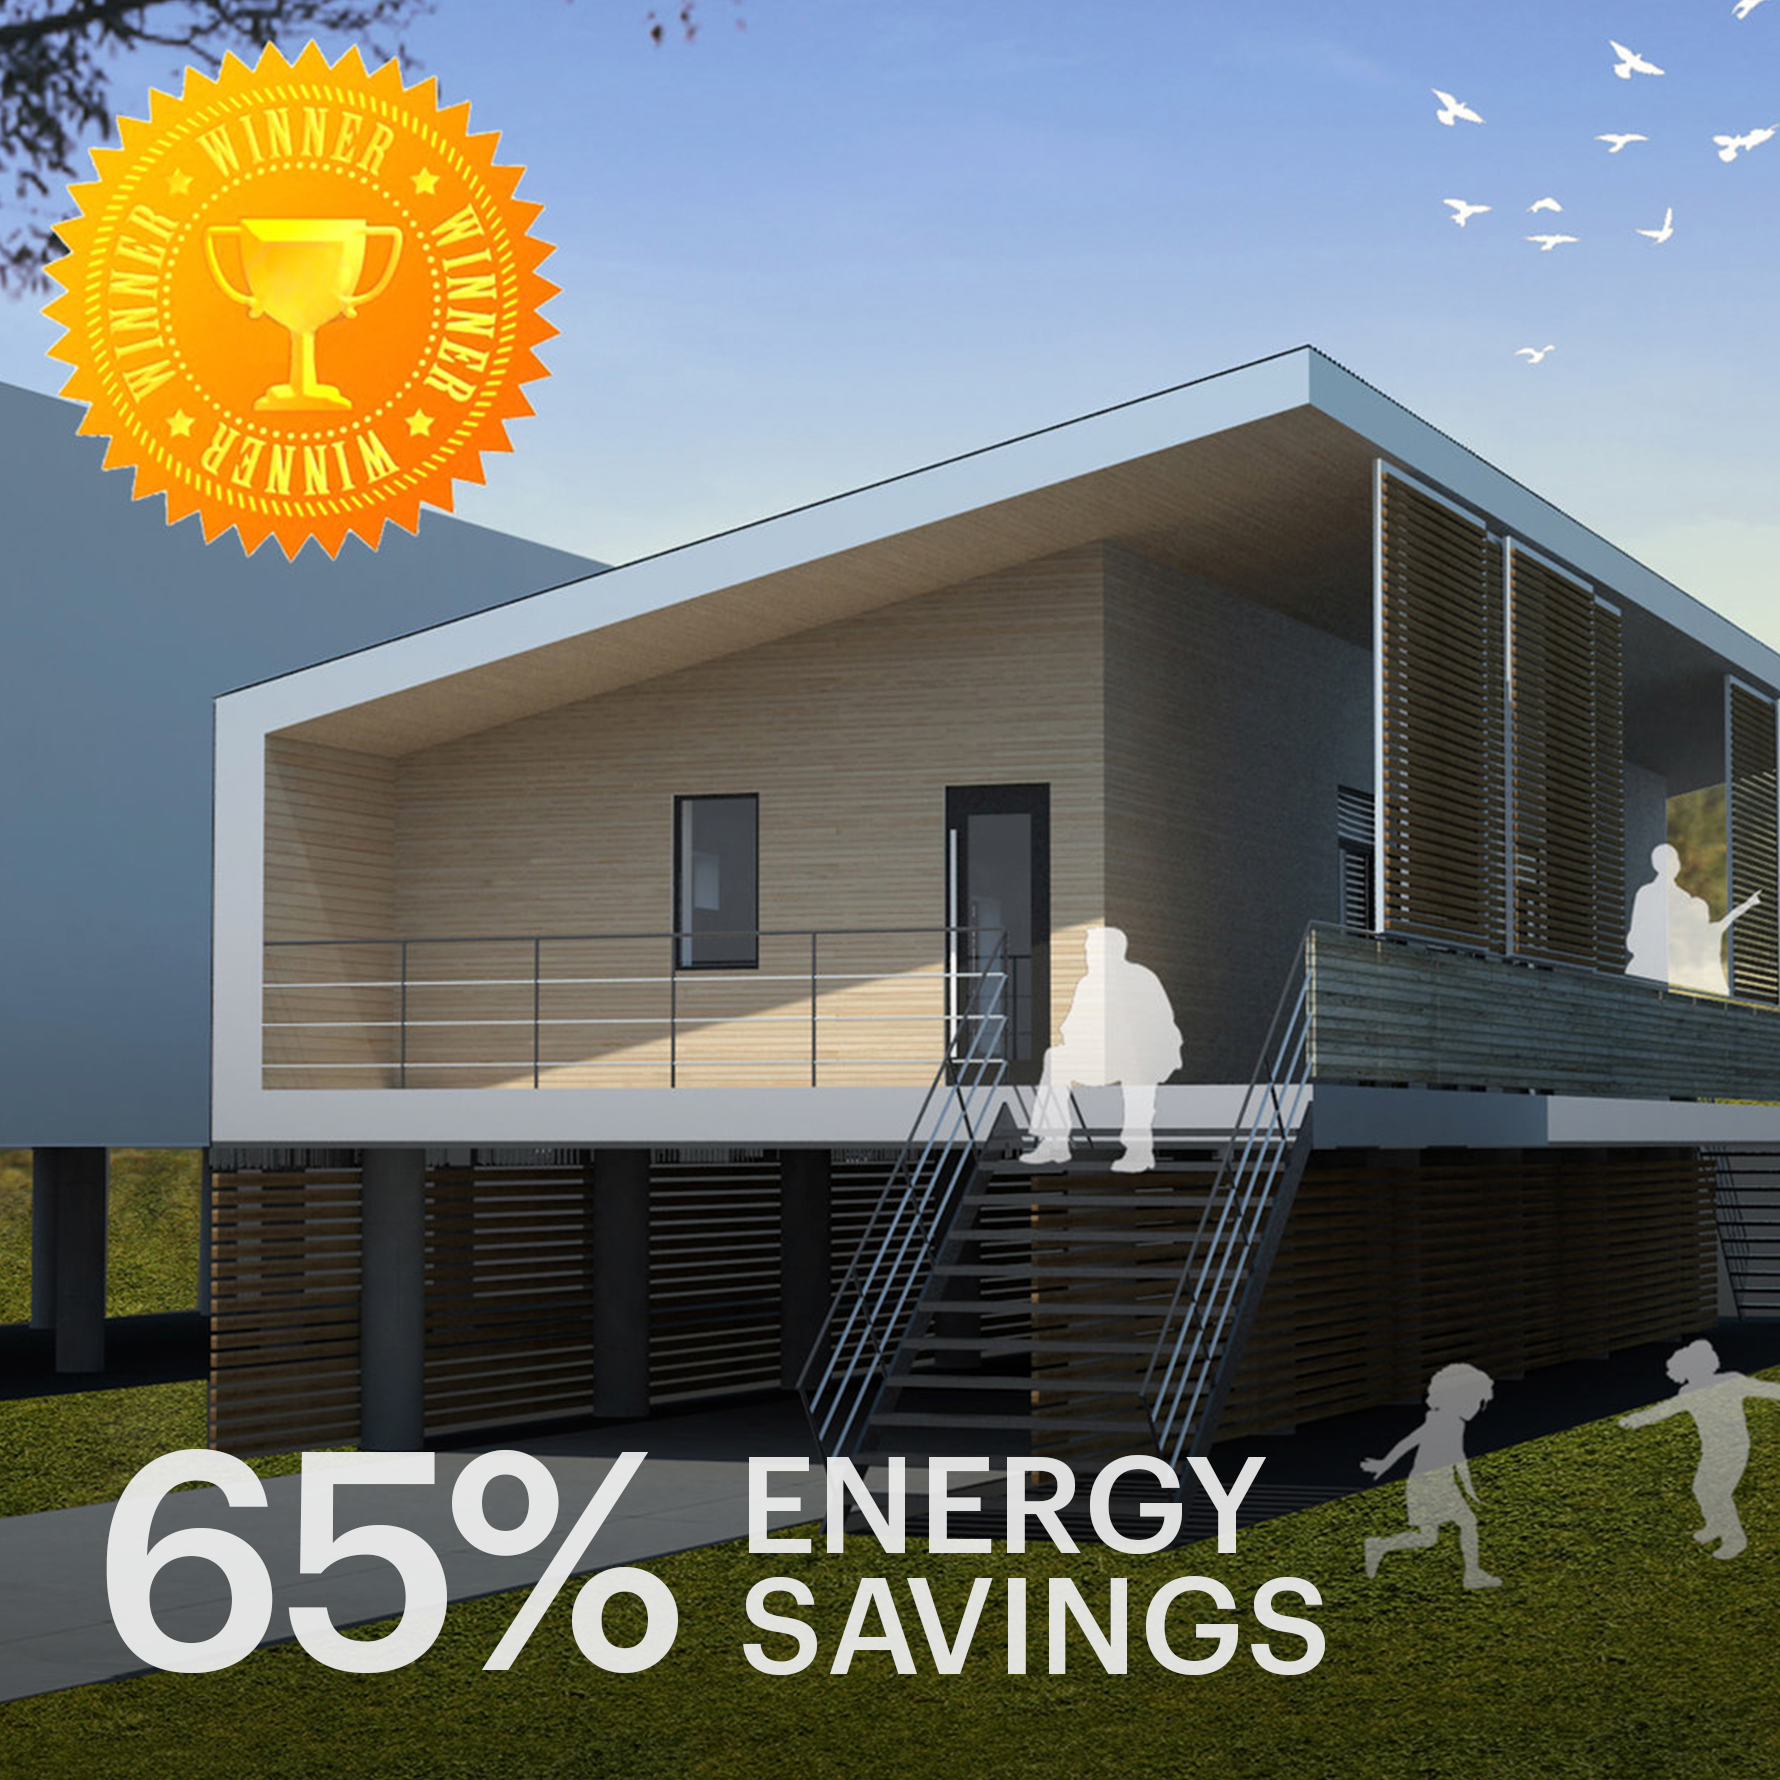 New Orleans  Modern Low-Cost, Low-Energy Passive House for the Lower 9th Ward